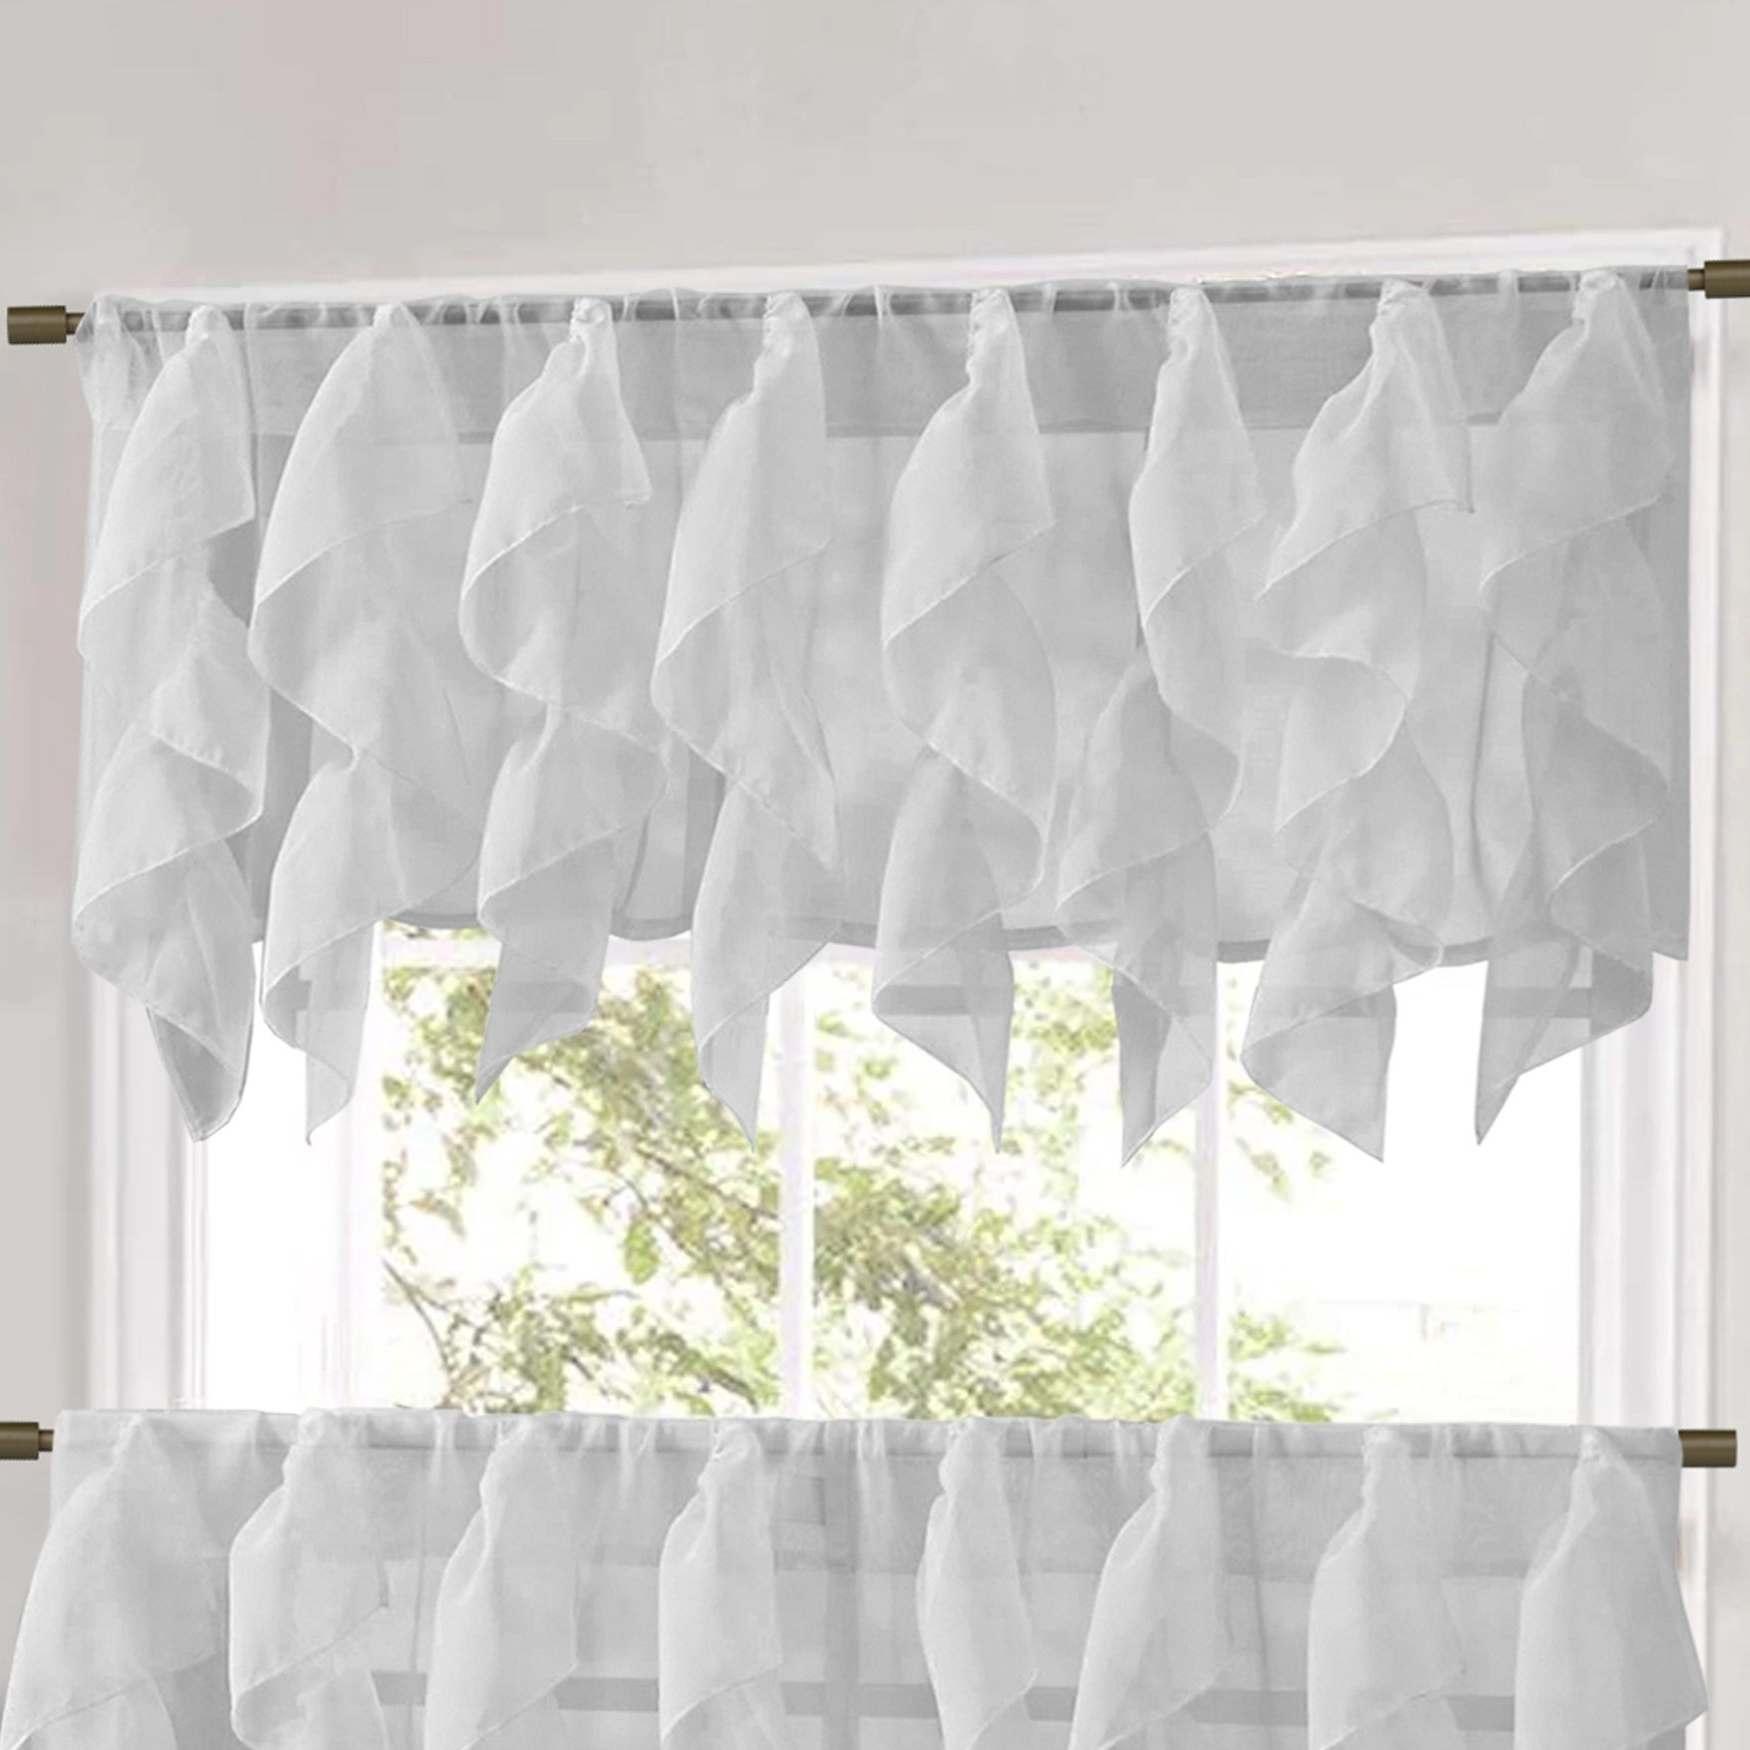 Well Liked Sweet Home Collection Silver Vertical Ruffled Waterfall Valance And Curtain Tiers Within Vertical Ruffled Waterfall Valance And Curtain Tiers (View 5 of 20)